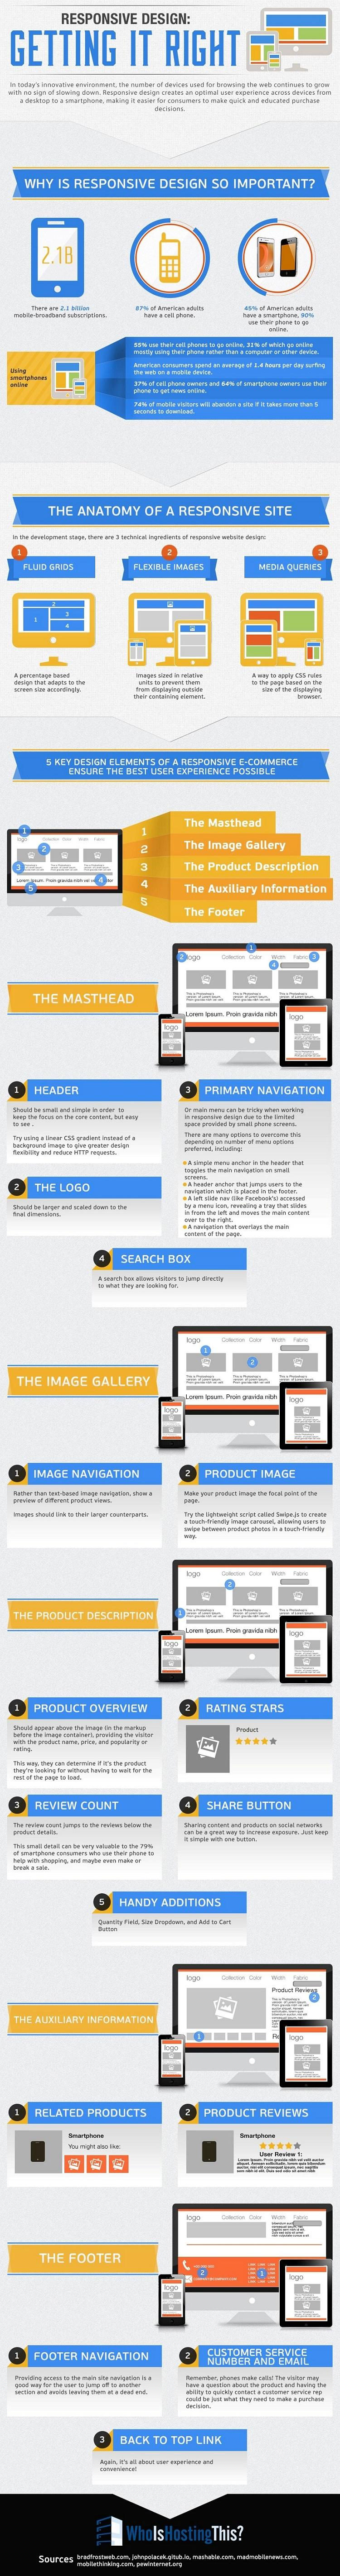 responsive-design-getting-it-right-infographic-mprofs.jpg